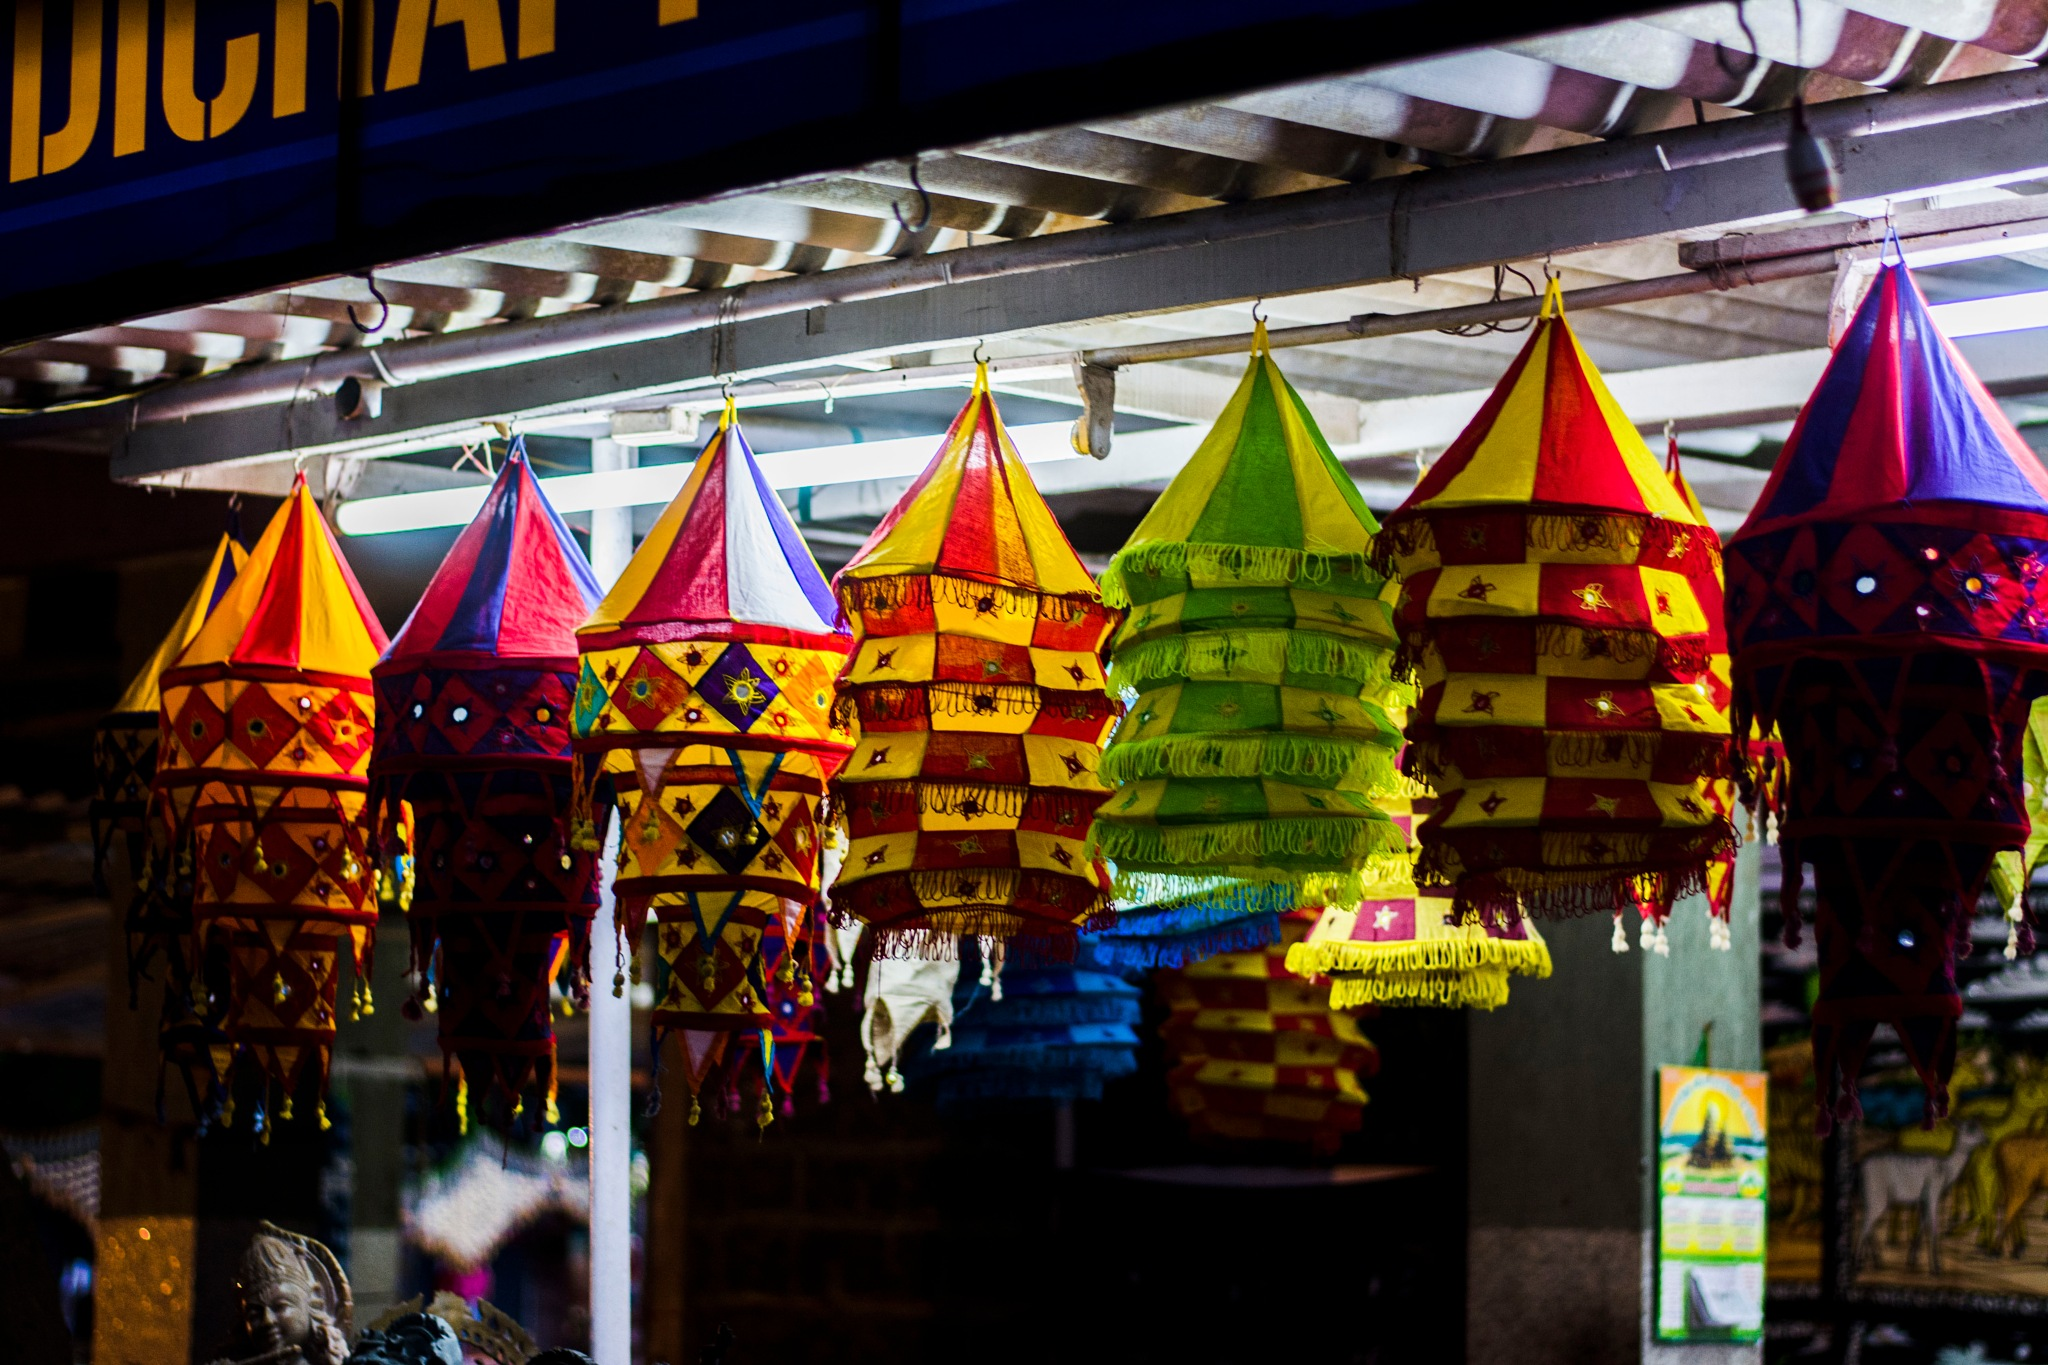 Low light - Nifty Fifty by Nishanth N